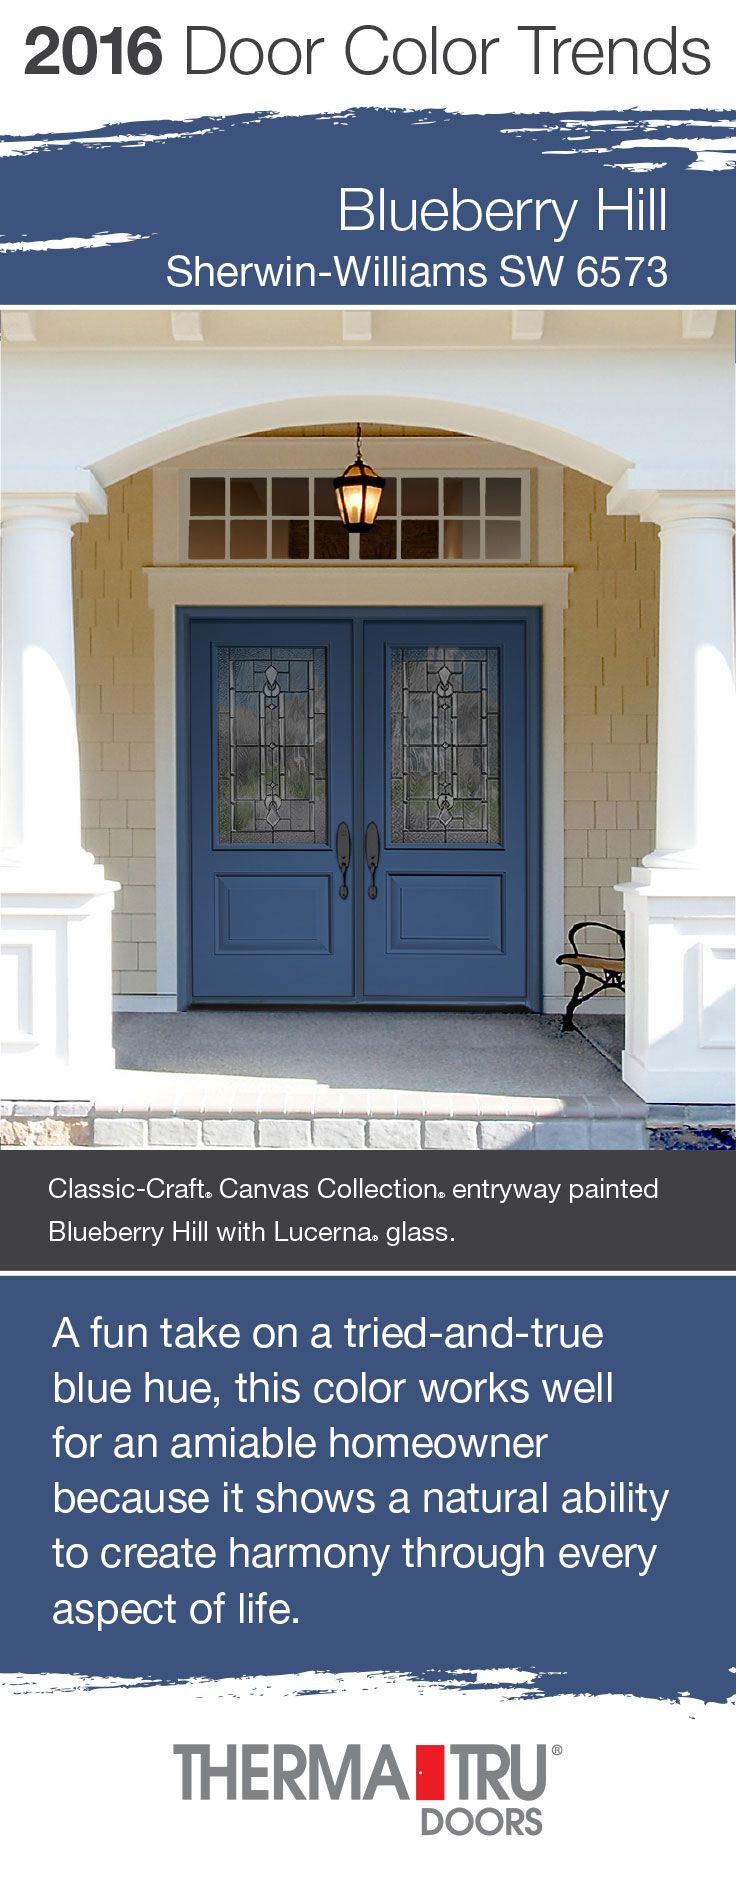 Blueberry Hill by Sherwin-Williams – one of the front door color trends for 2016 – shown here on two Classic-Craft Canvas Collection doors from Therma-Tru.  #FrontDoor #CurbAppeal #Color  http://www.thermatru.com